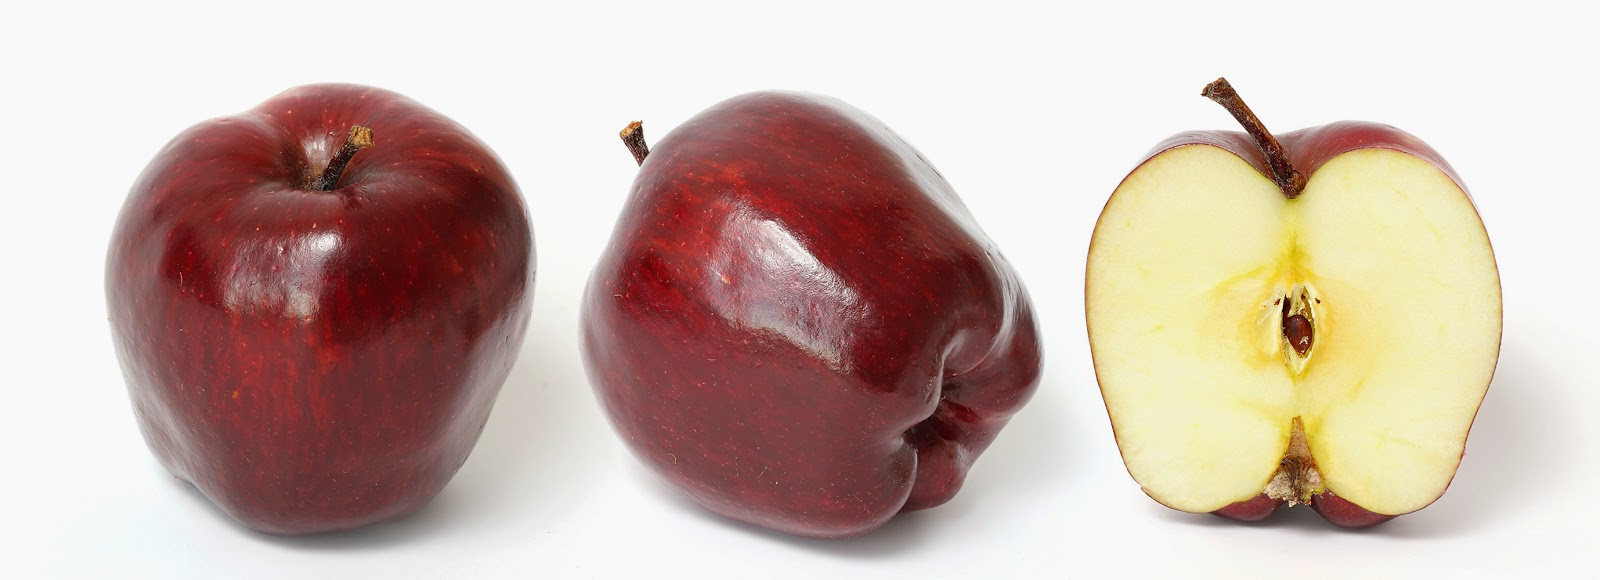 http://en.wikipedia.org/wiki/File:Red_delicious_and_cross_section.jpg